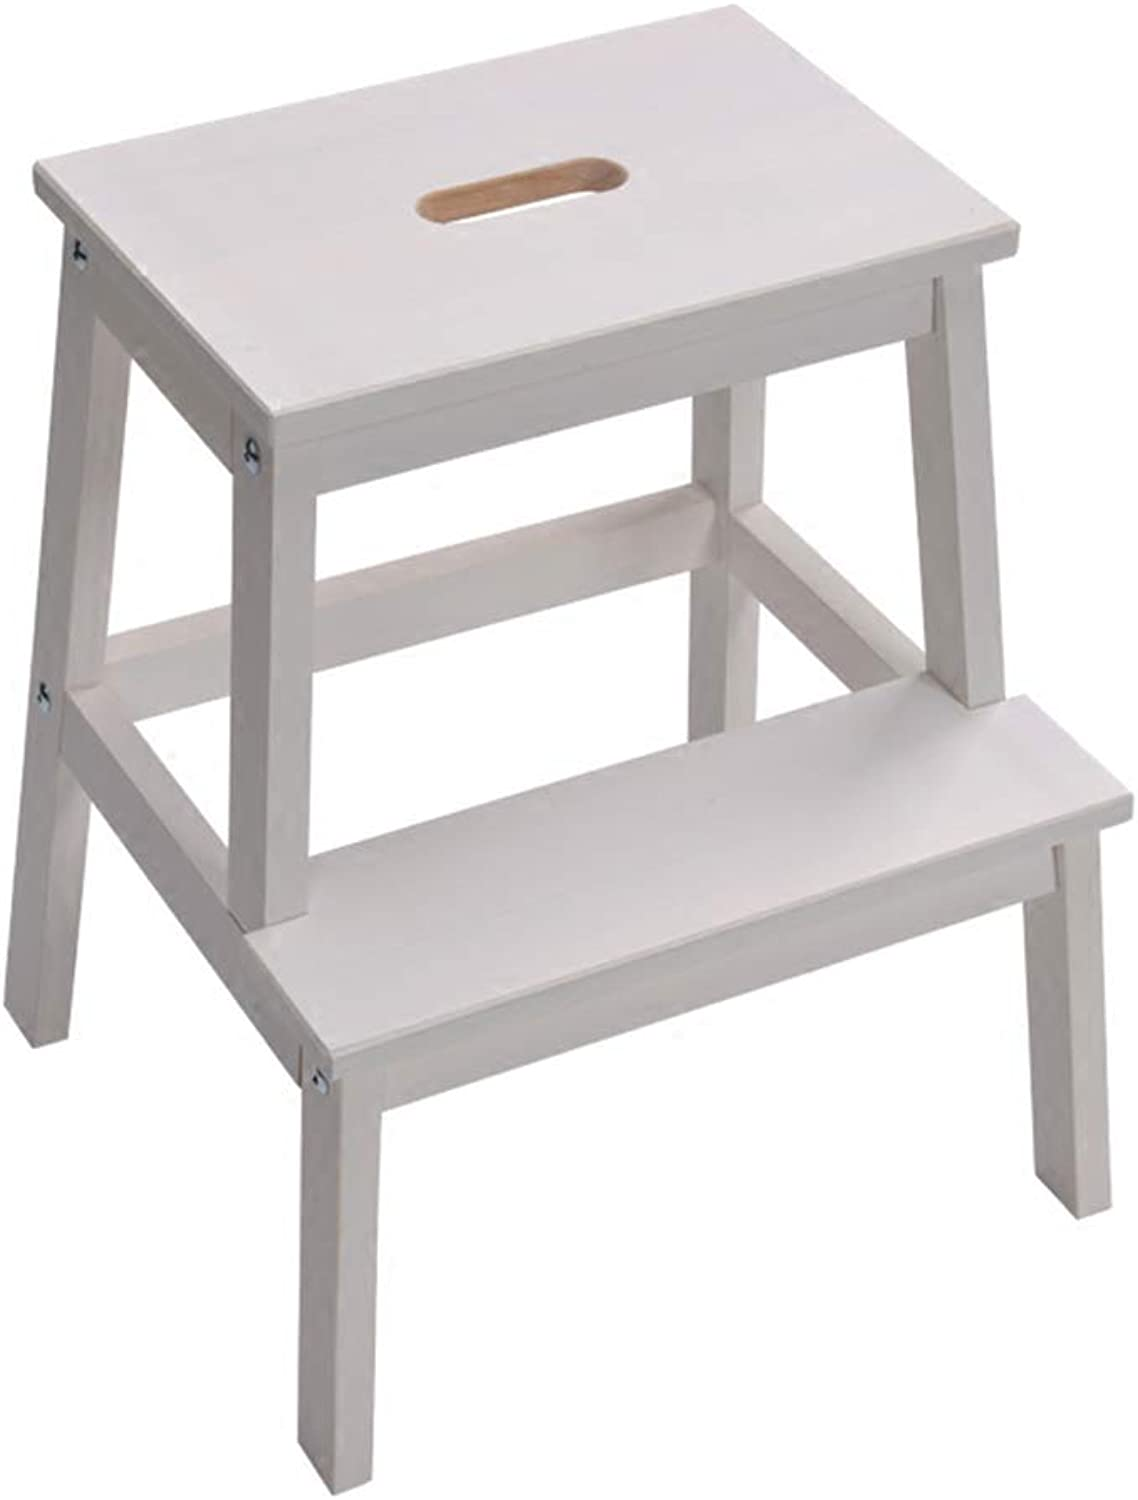 PENGFEI Ladder Stool 2 Steps Kitchen Bathroom Ascend Library Solid Wood, 2 colors Furniture (color   White)